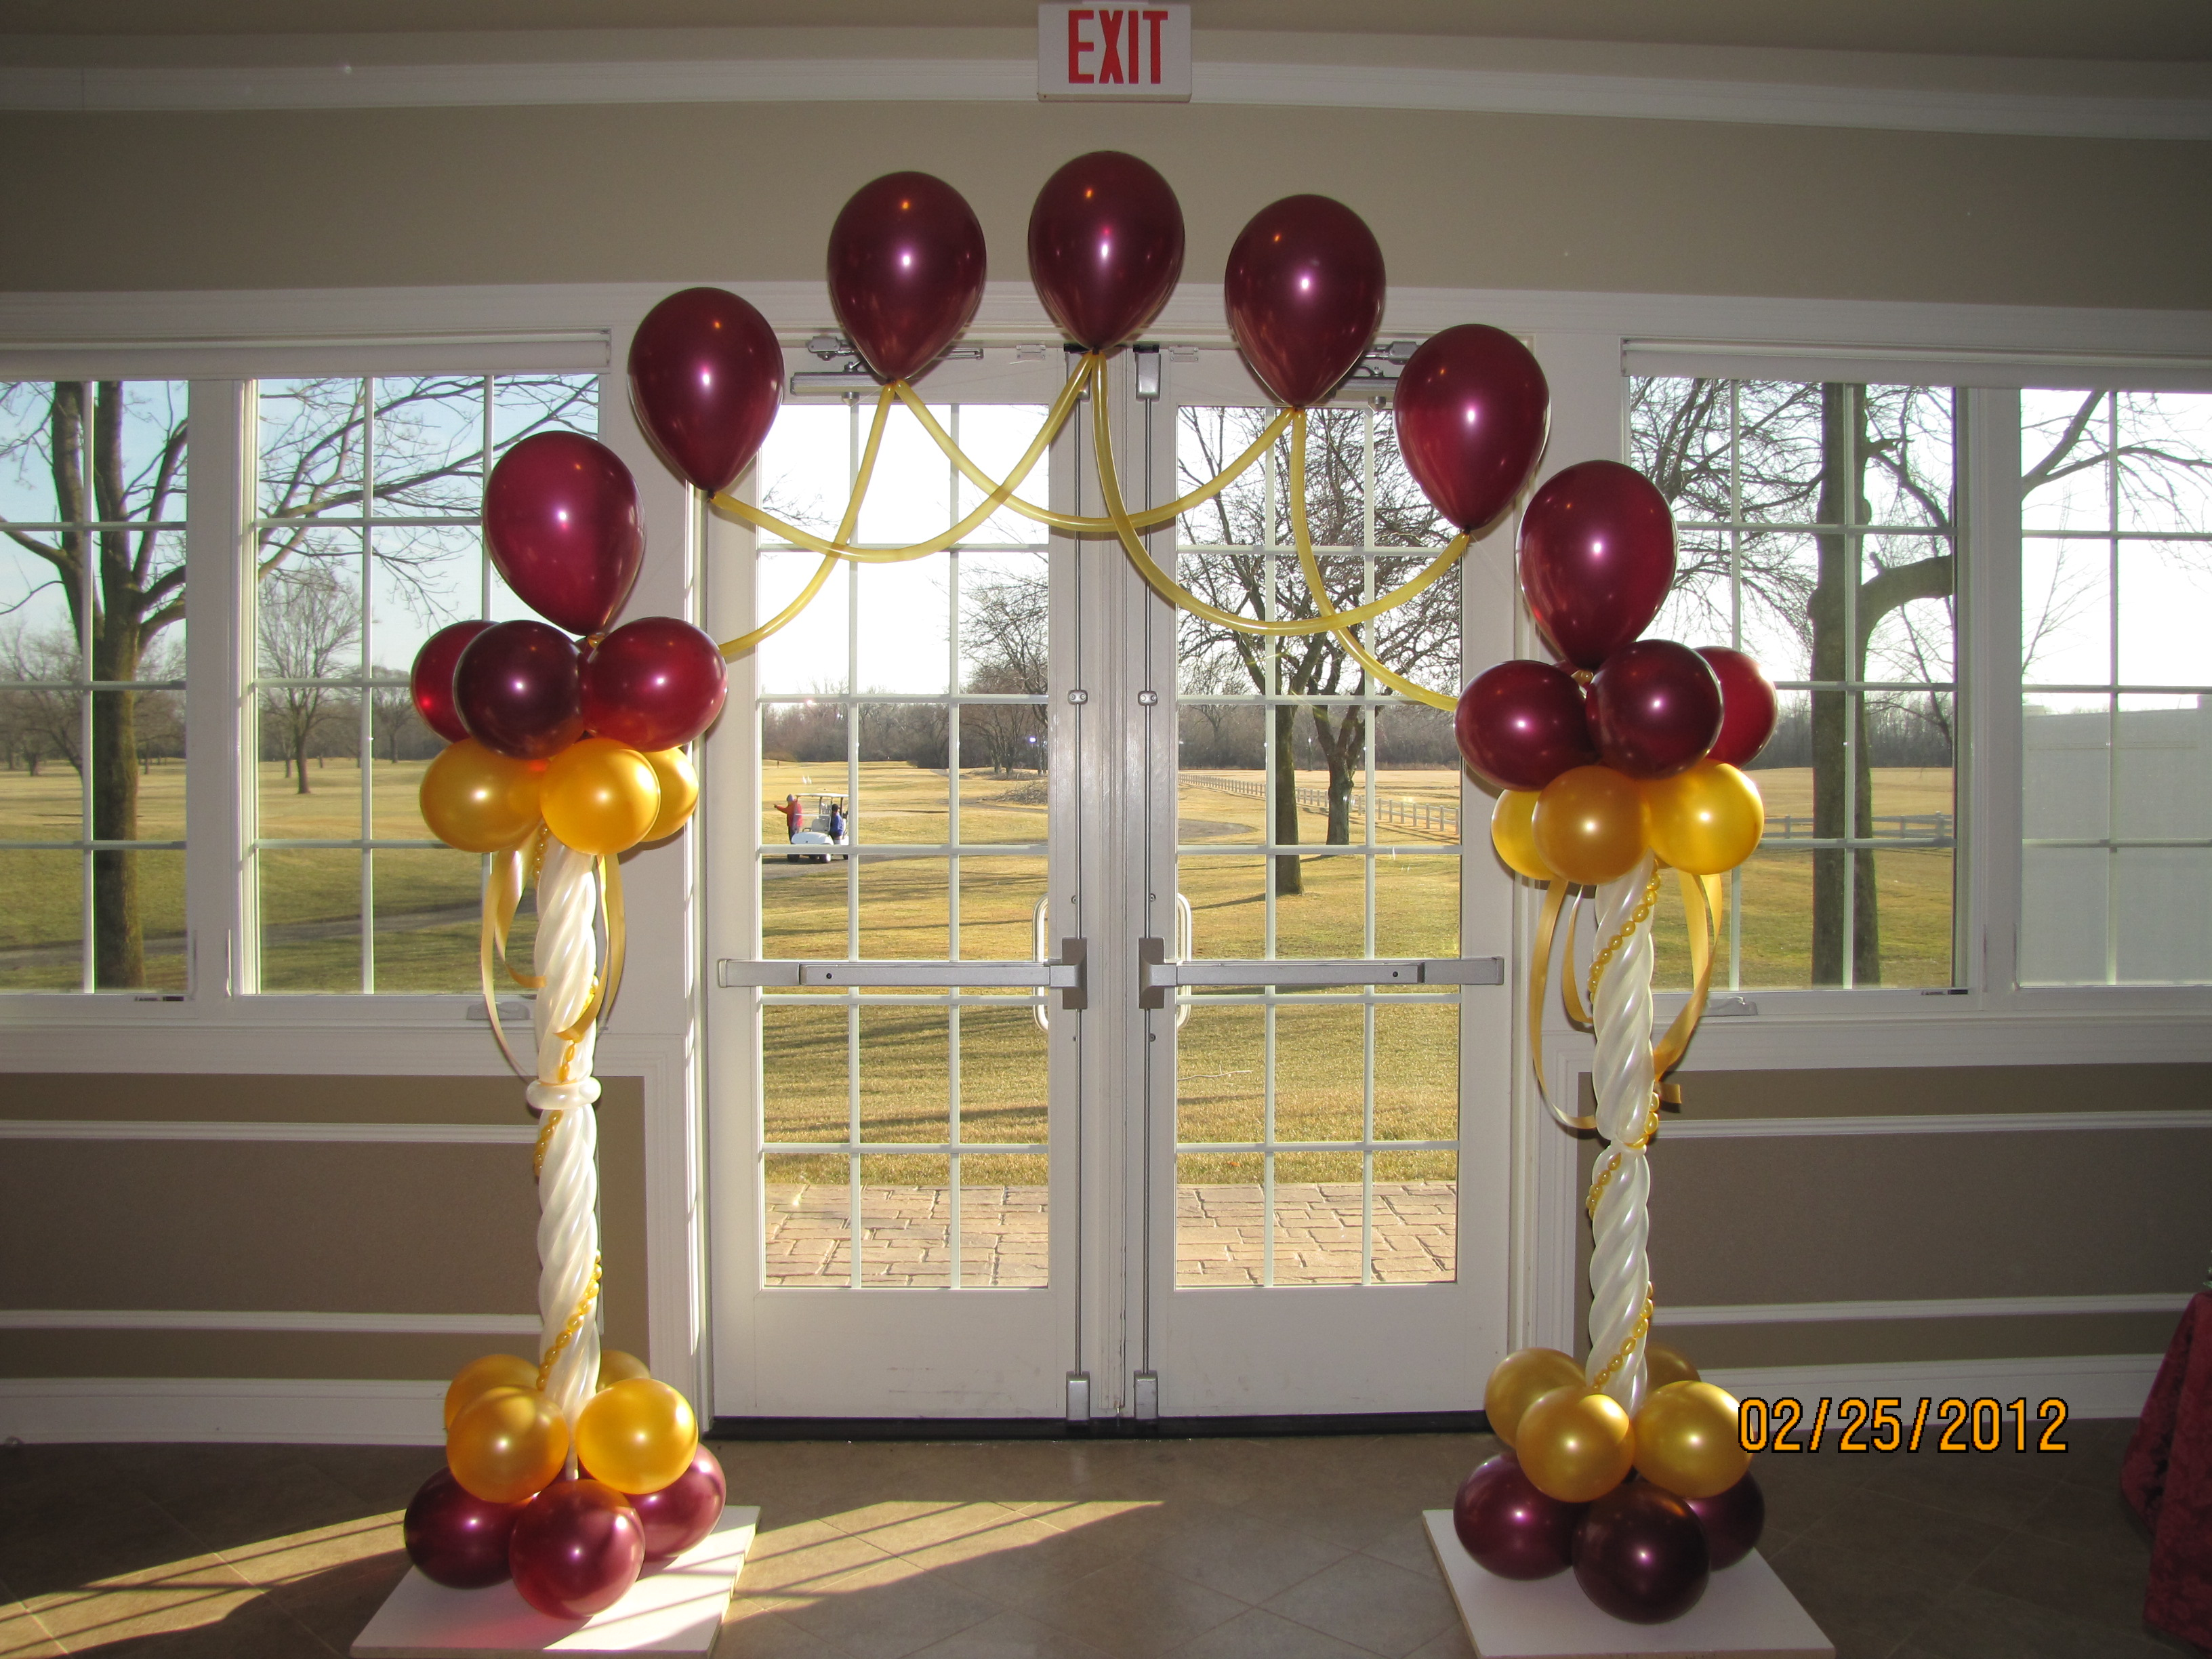 Northwest indiana balloons amytheballoonlady for Ballom decoration